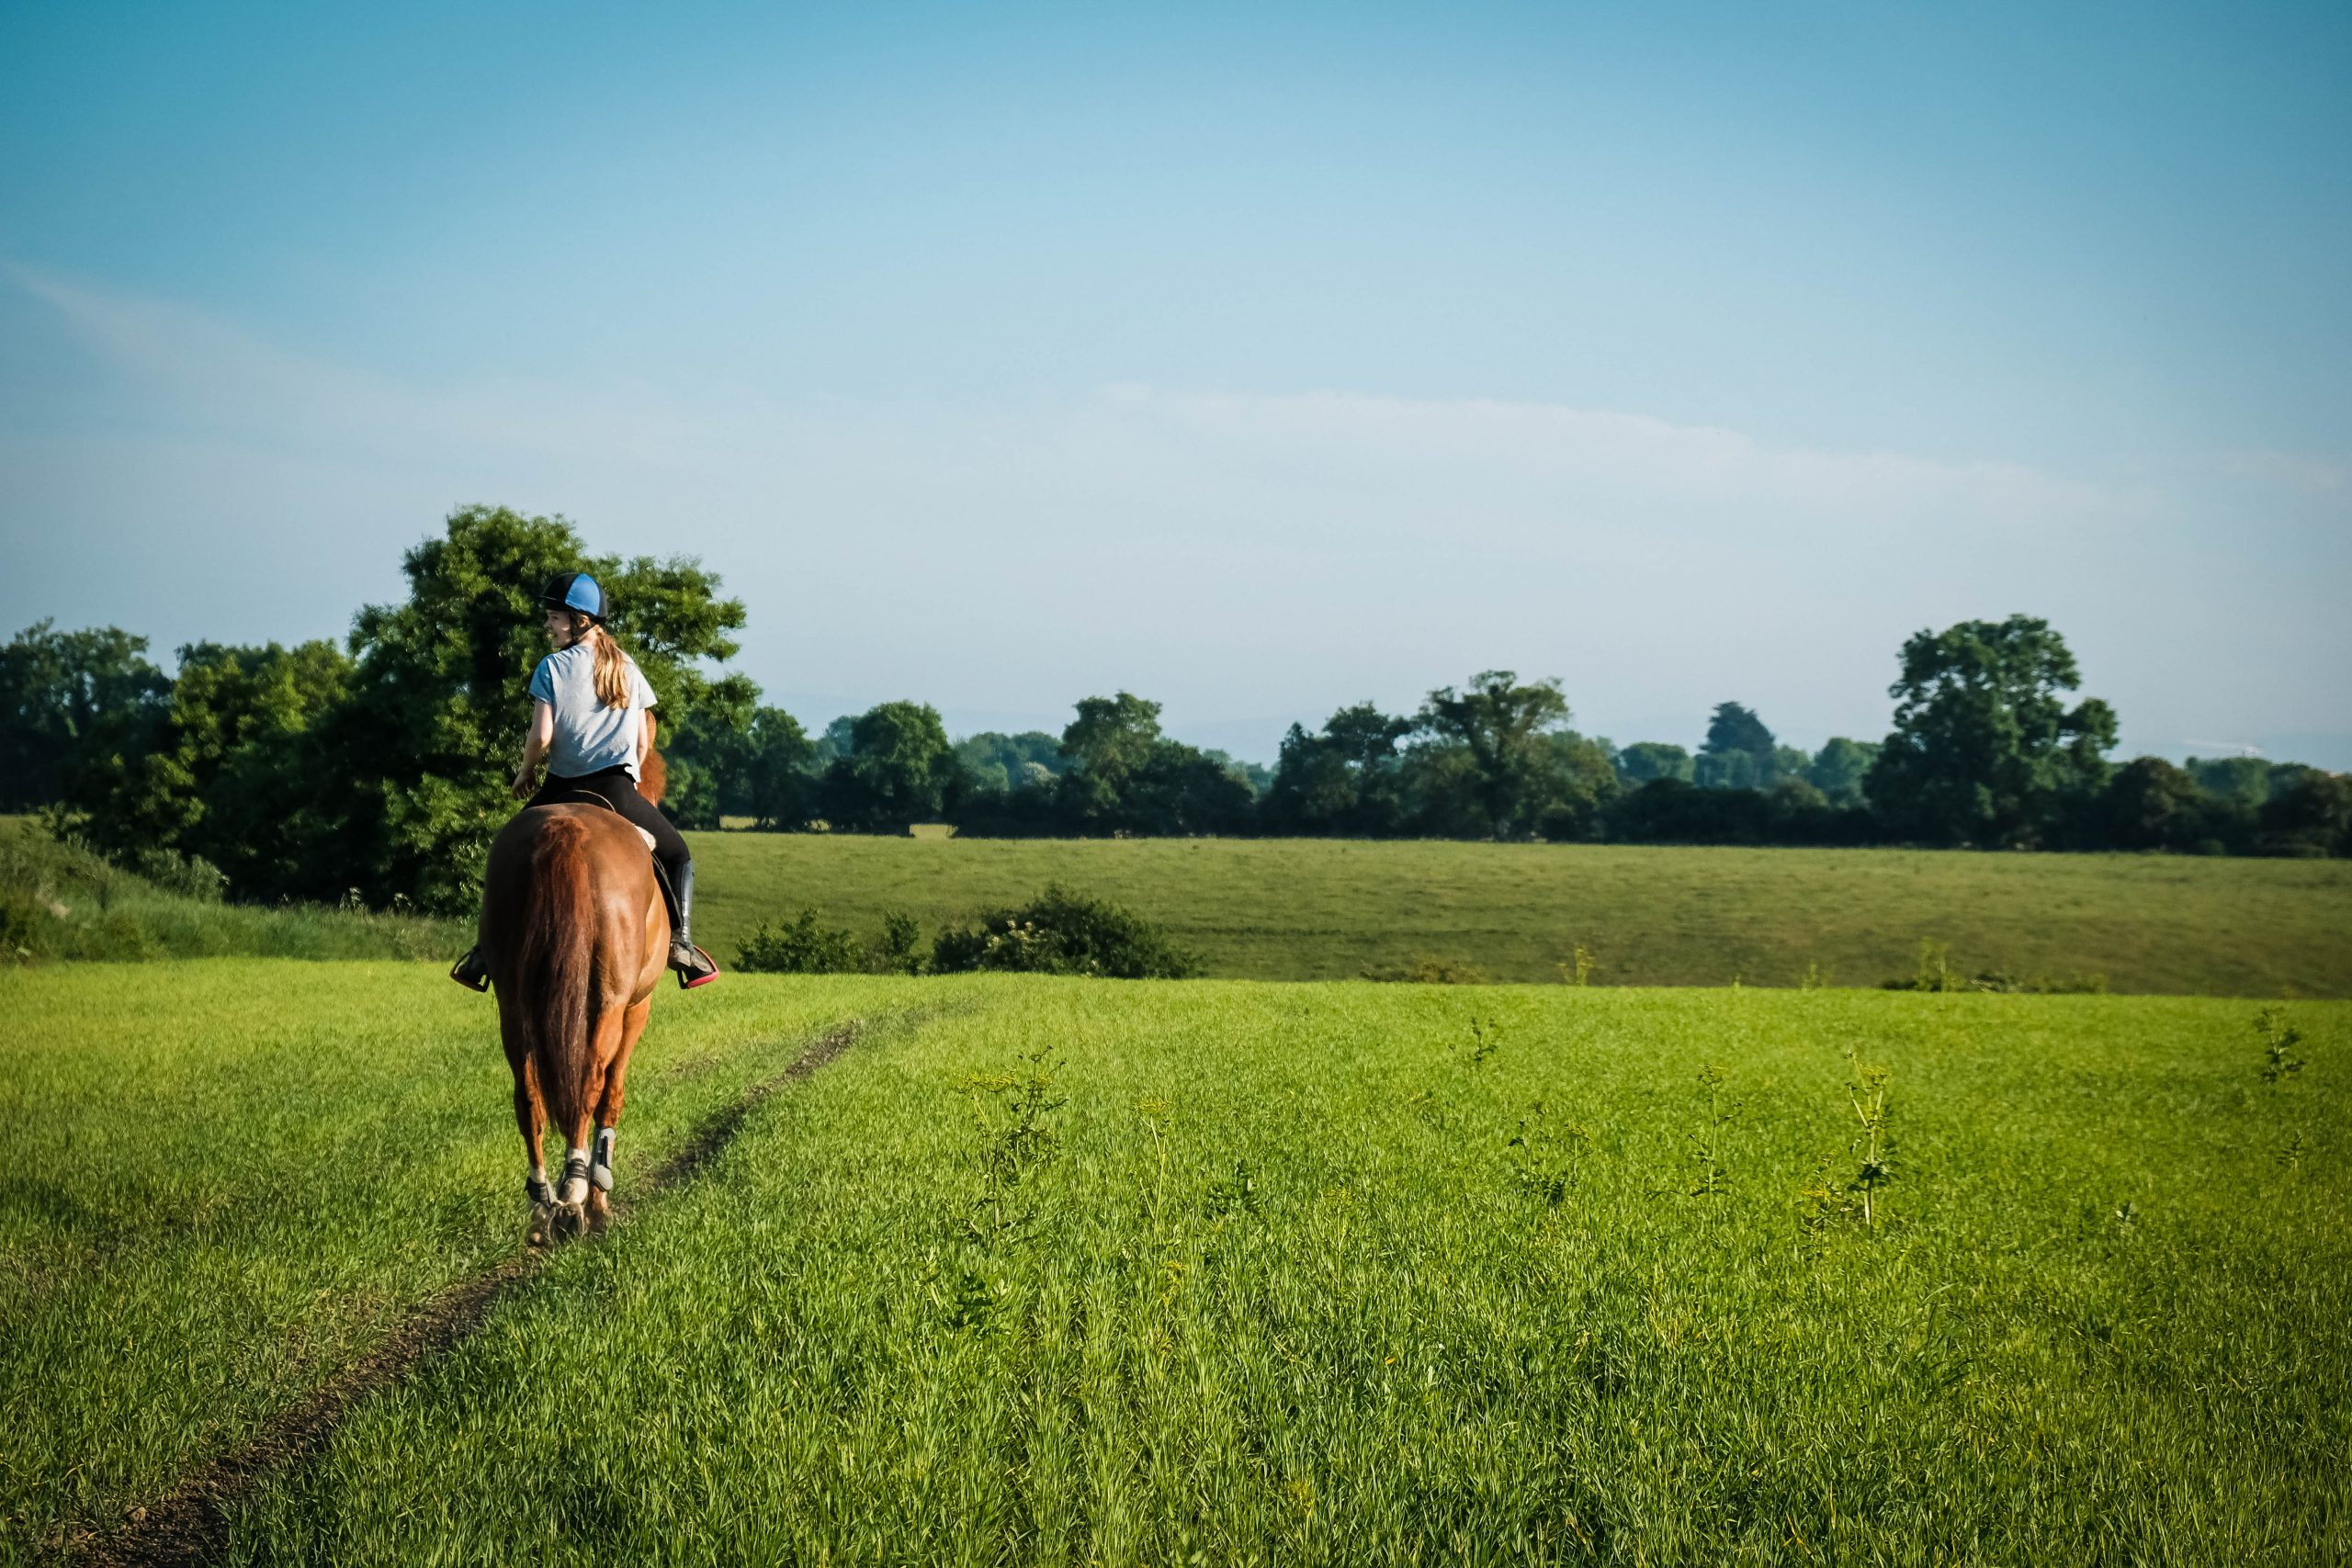 Girl horse riding in field